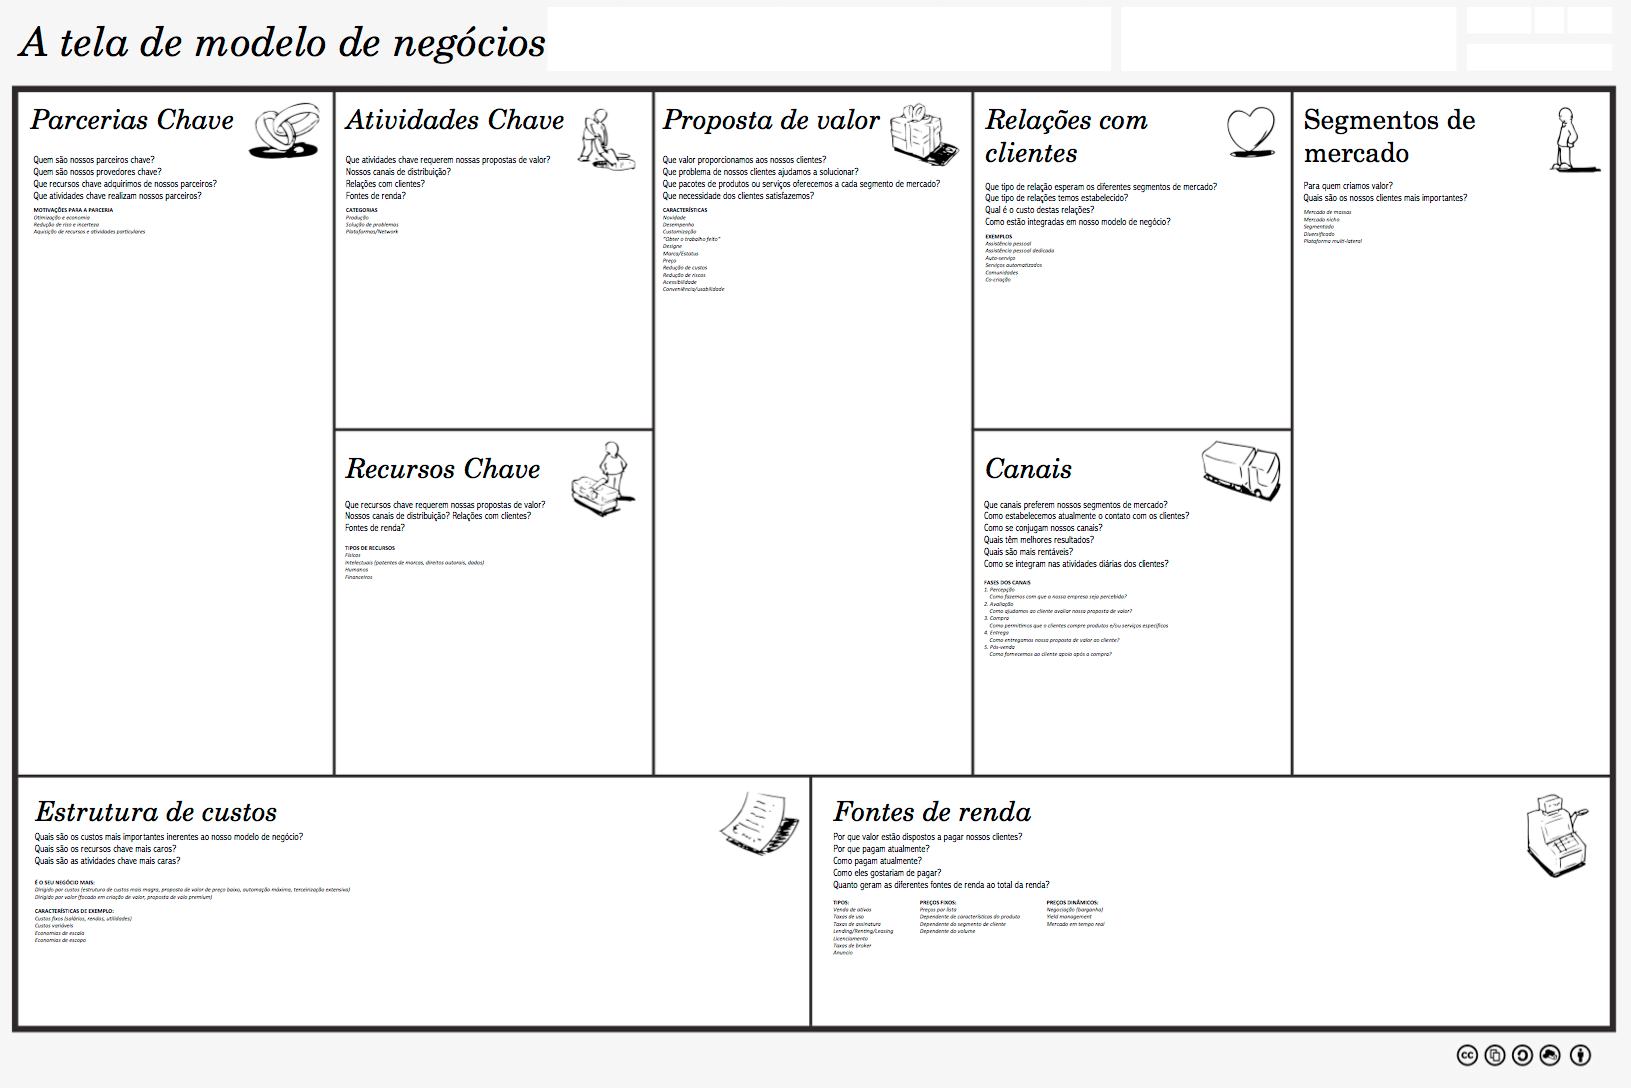 Business Model Canvas - O Analista de Modelos Negocios